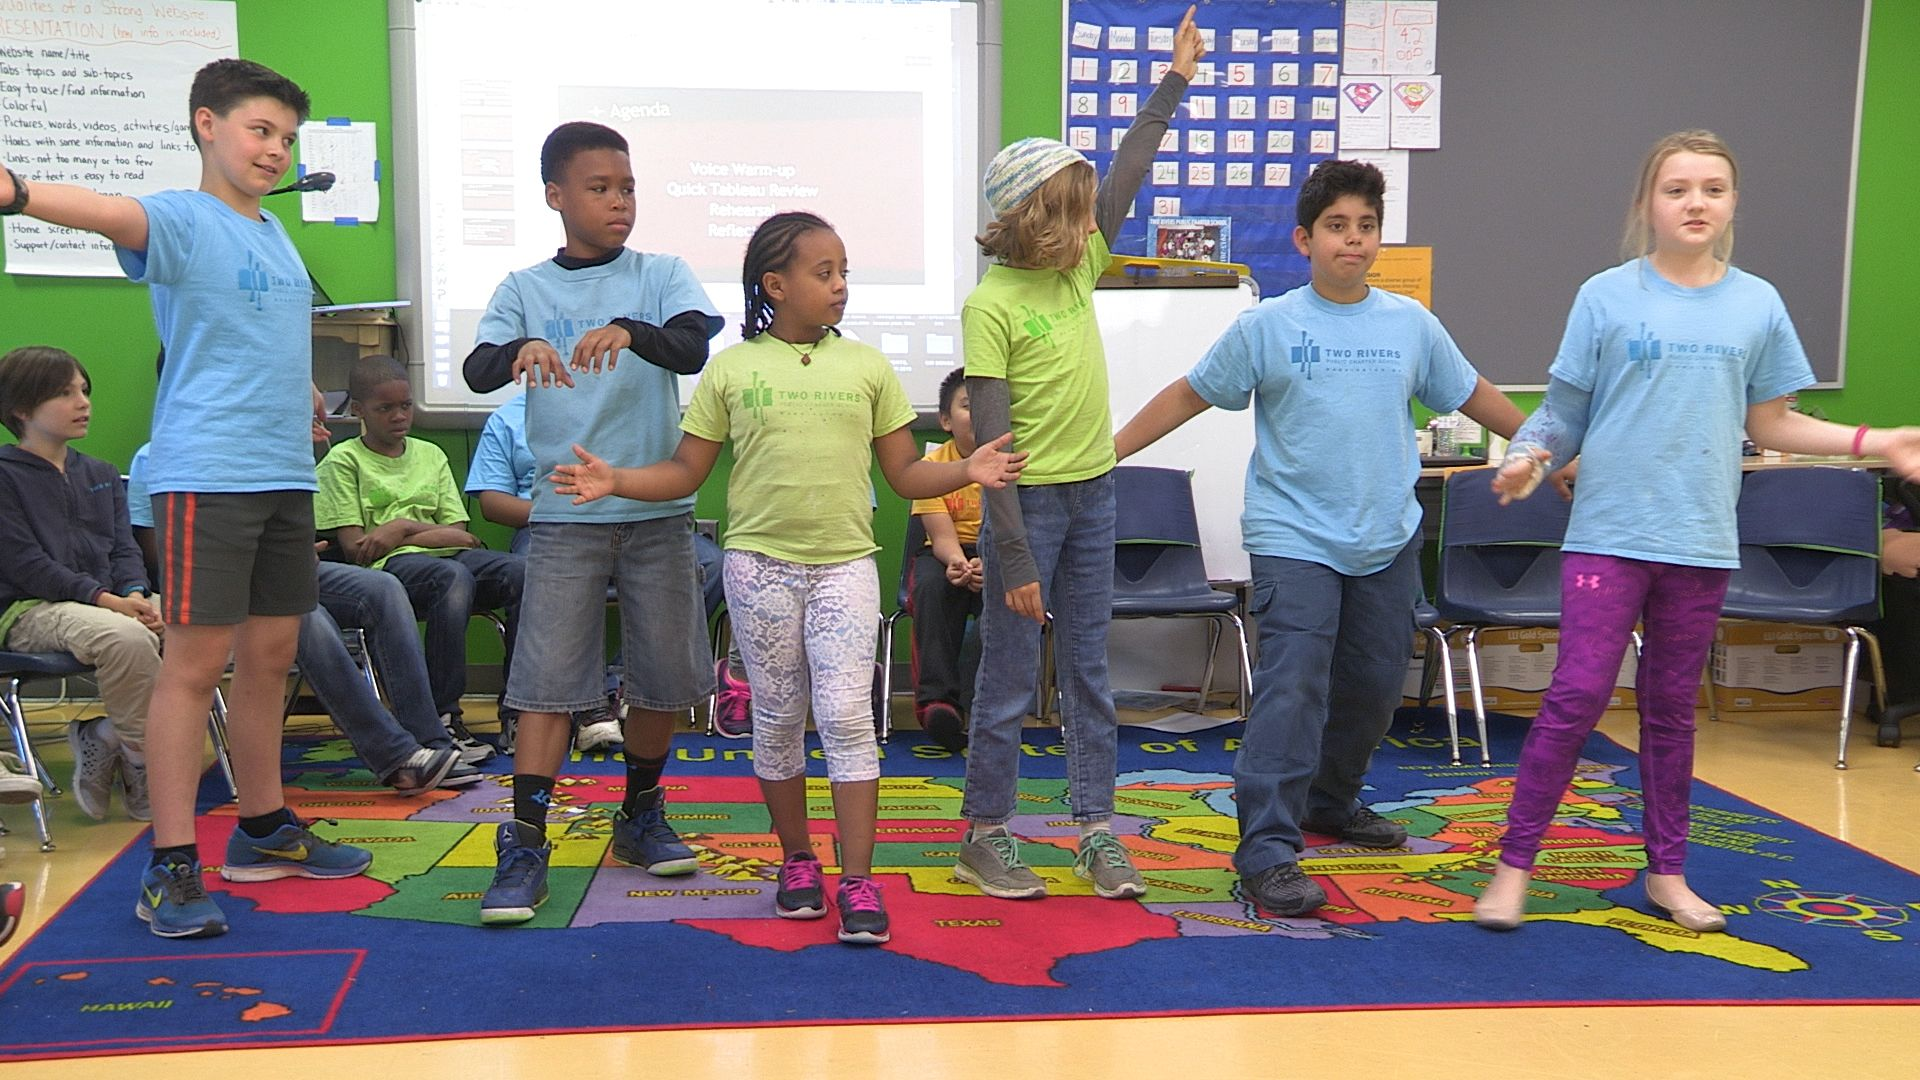 A group of students are having fun in a classroom.